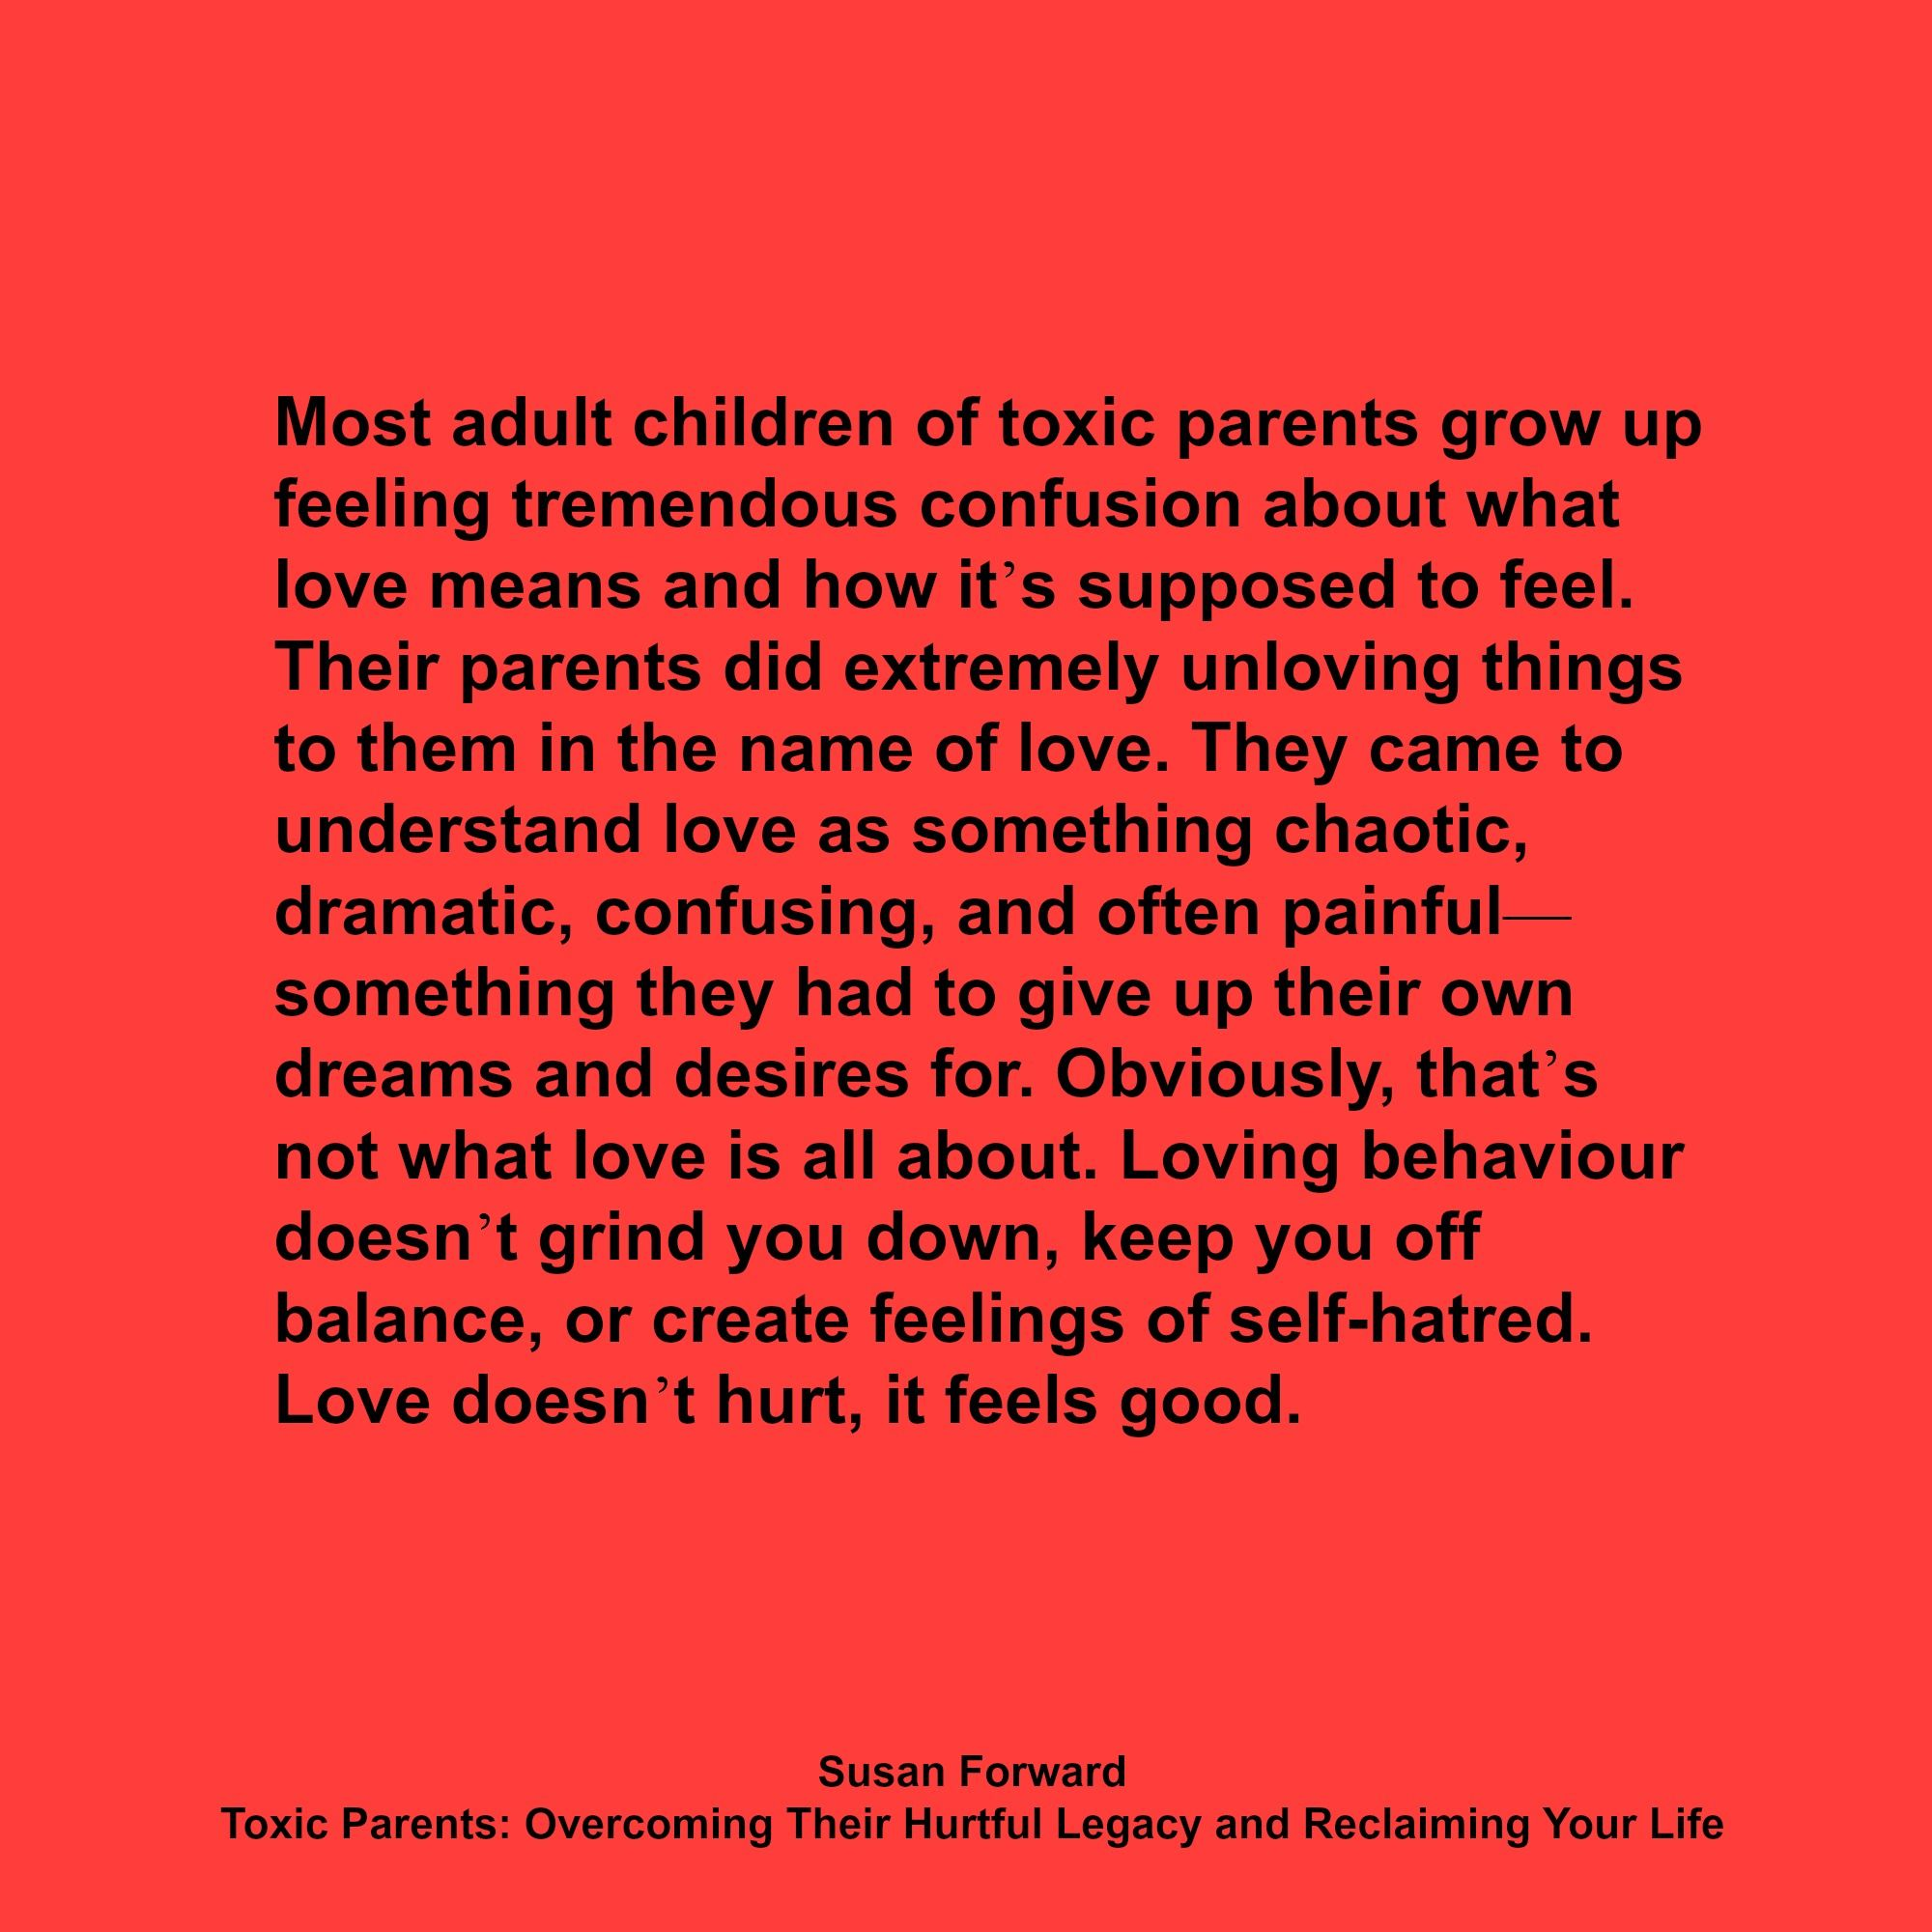 a literary analysis of the toxic parents by dr susan forward Read toxic parents by craig buck, dr susan forward dr susan forward draws on case histories and the real-life voices of adult children of classic literature.